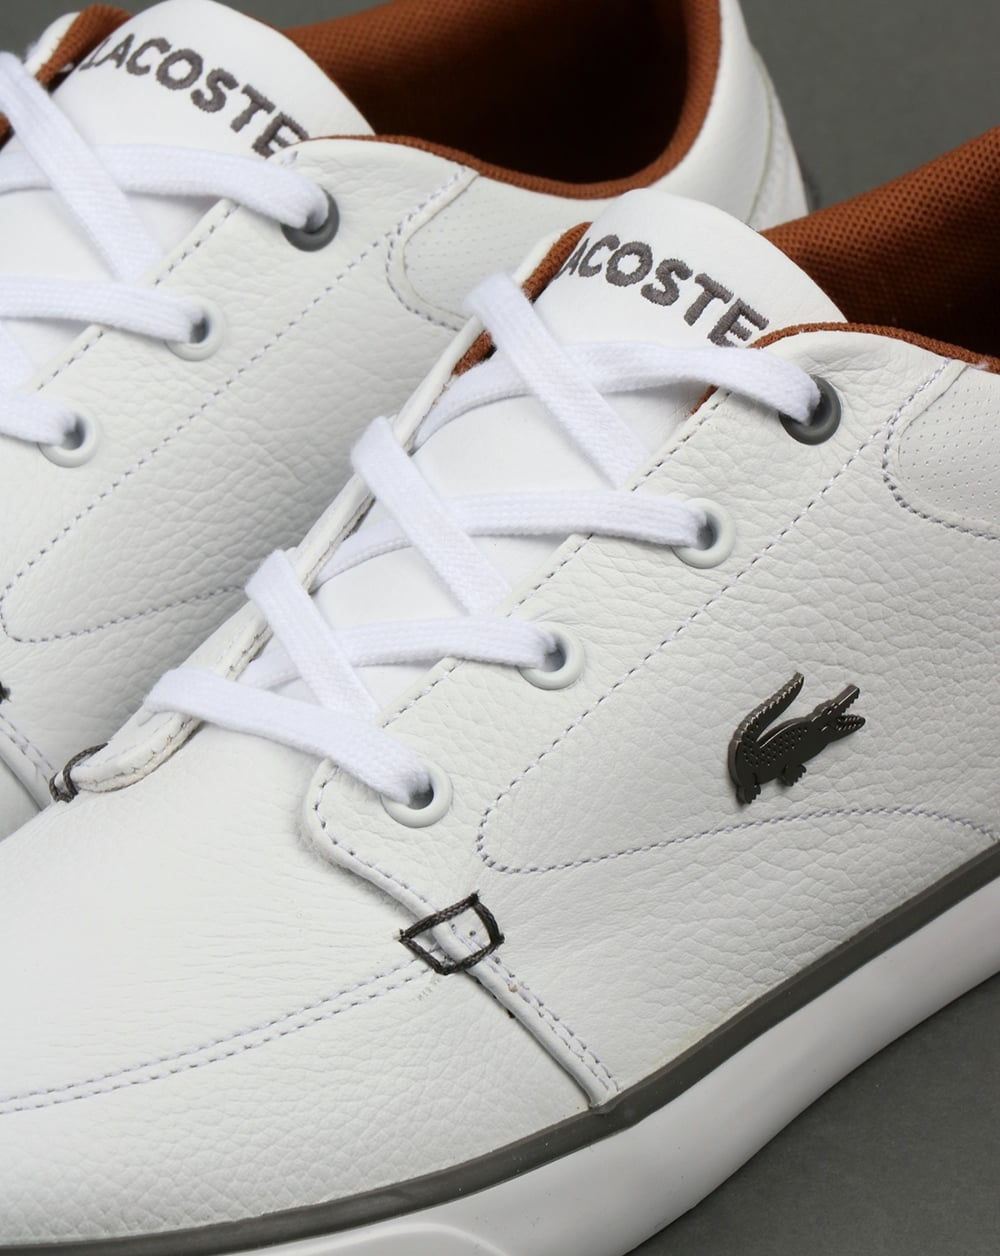 623a9cdab1e3b8 Lacoste Footwear Bayliss Leather Trainers White